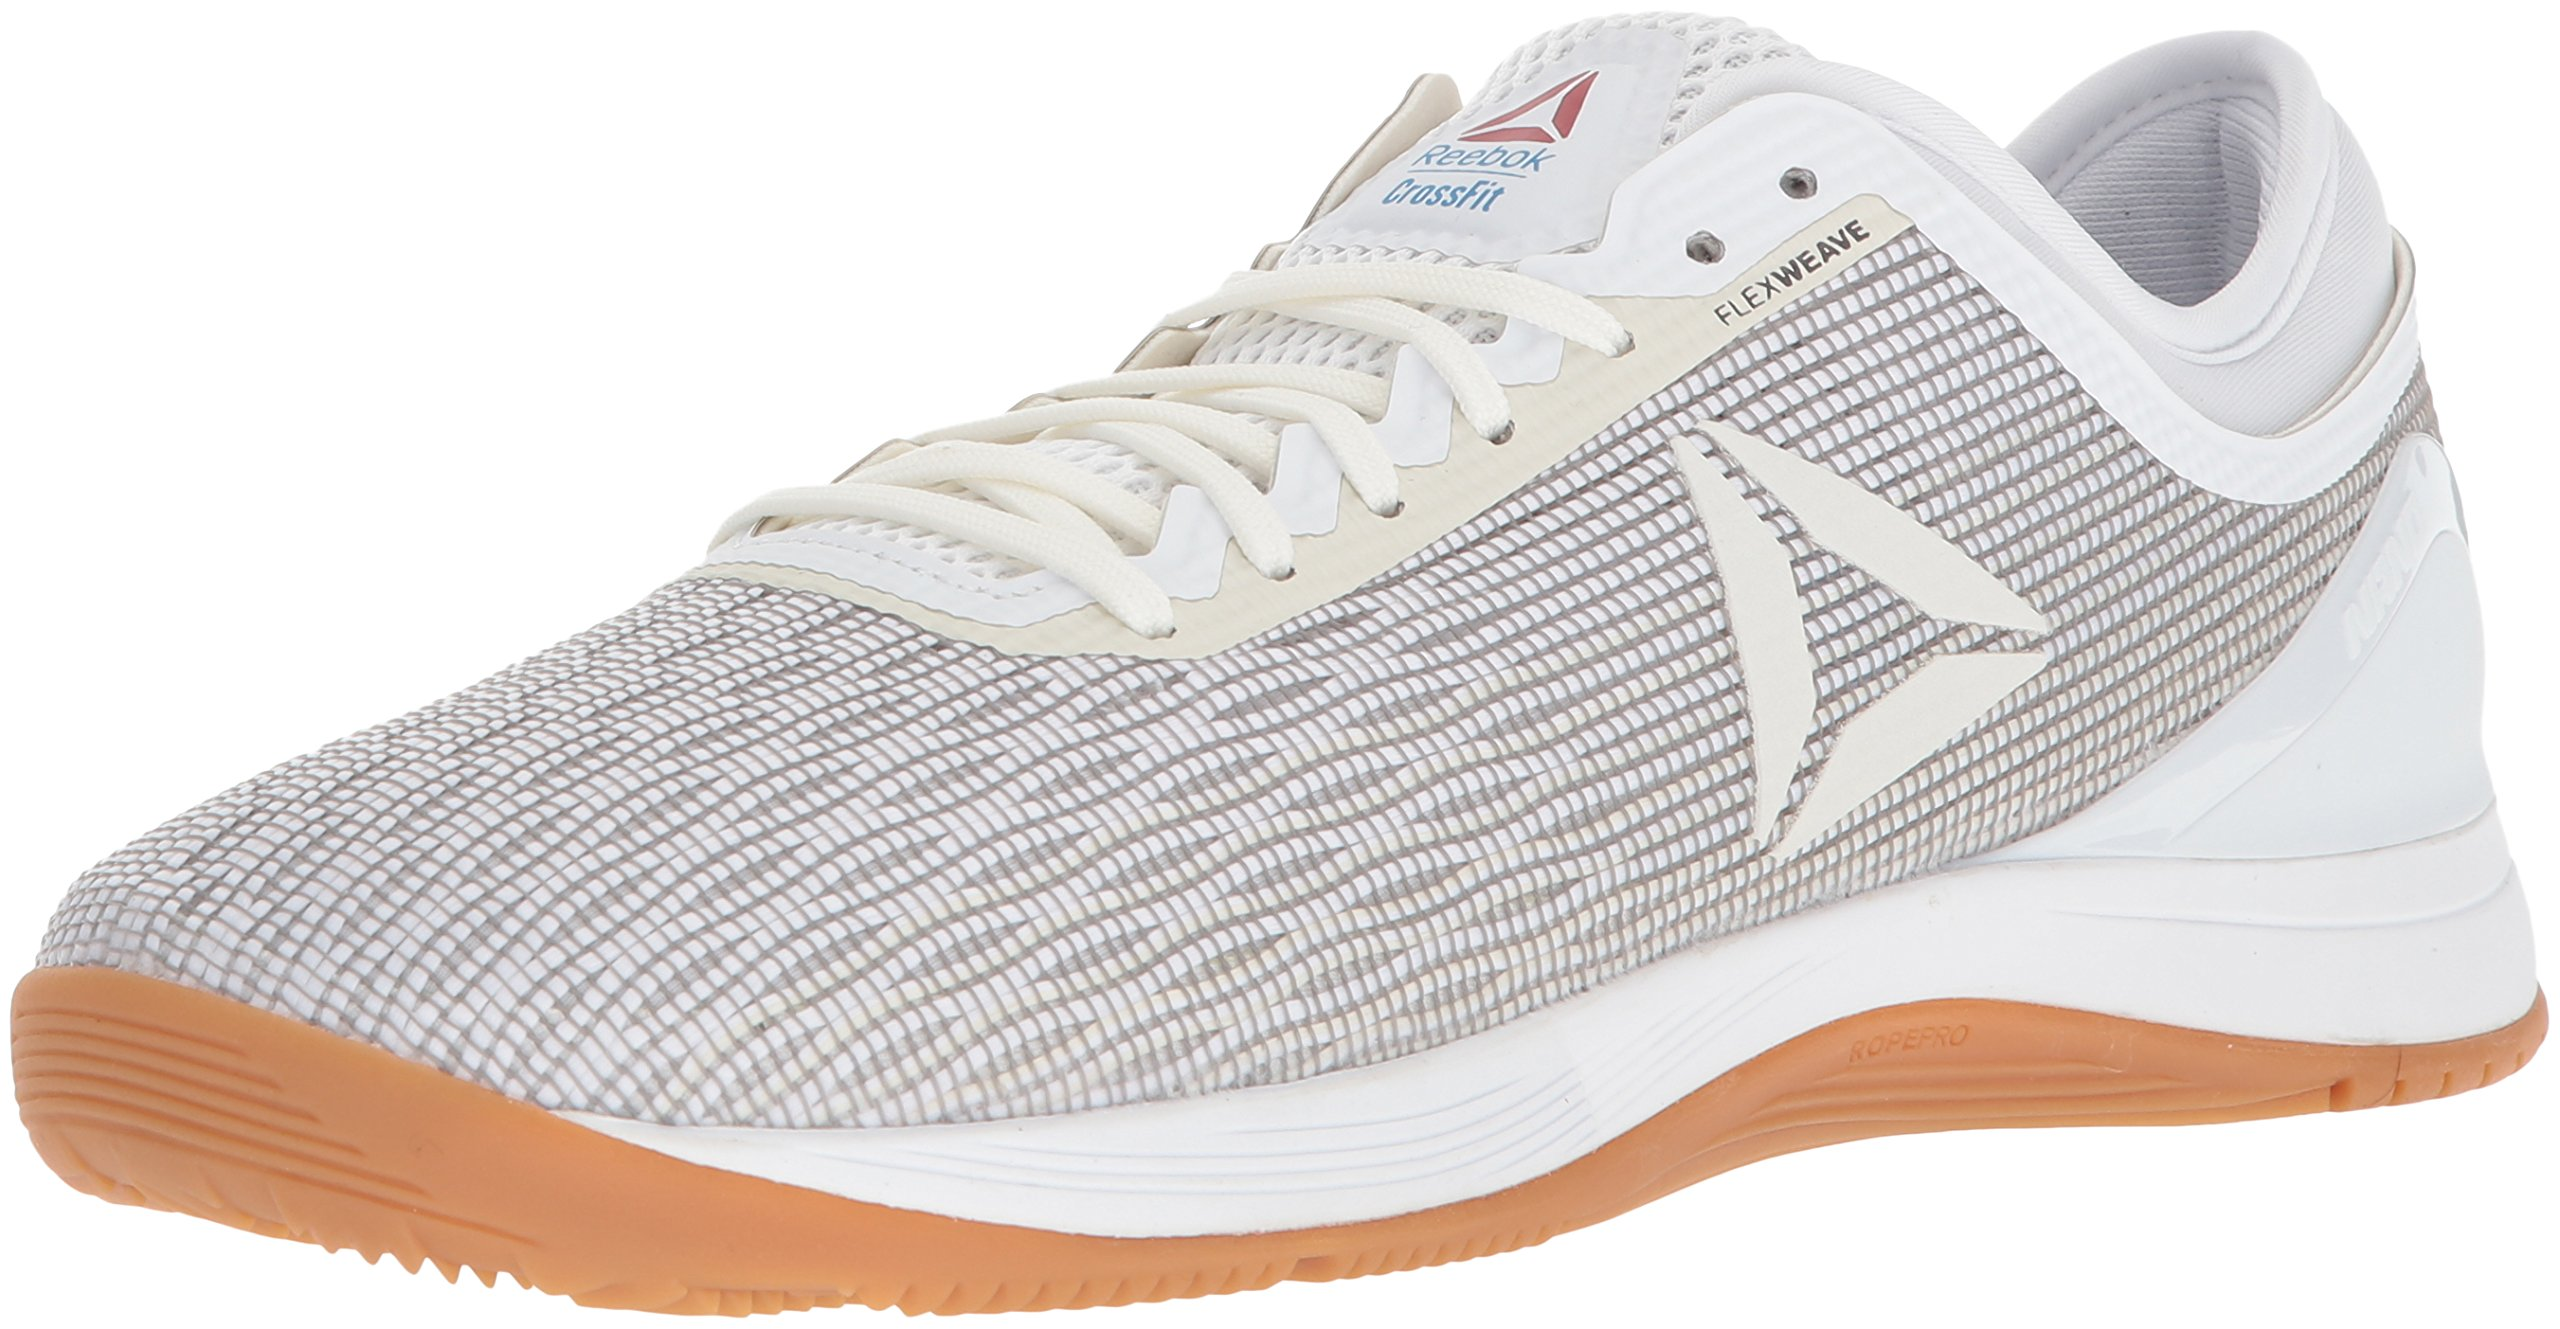 Reebok Men's CROSSFIT Nano 8.0 Flexweave Cross Trainer, White/Classic White/Excellent Red/Blue/Gum, 14 M US